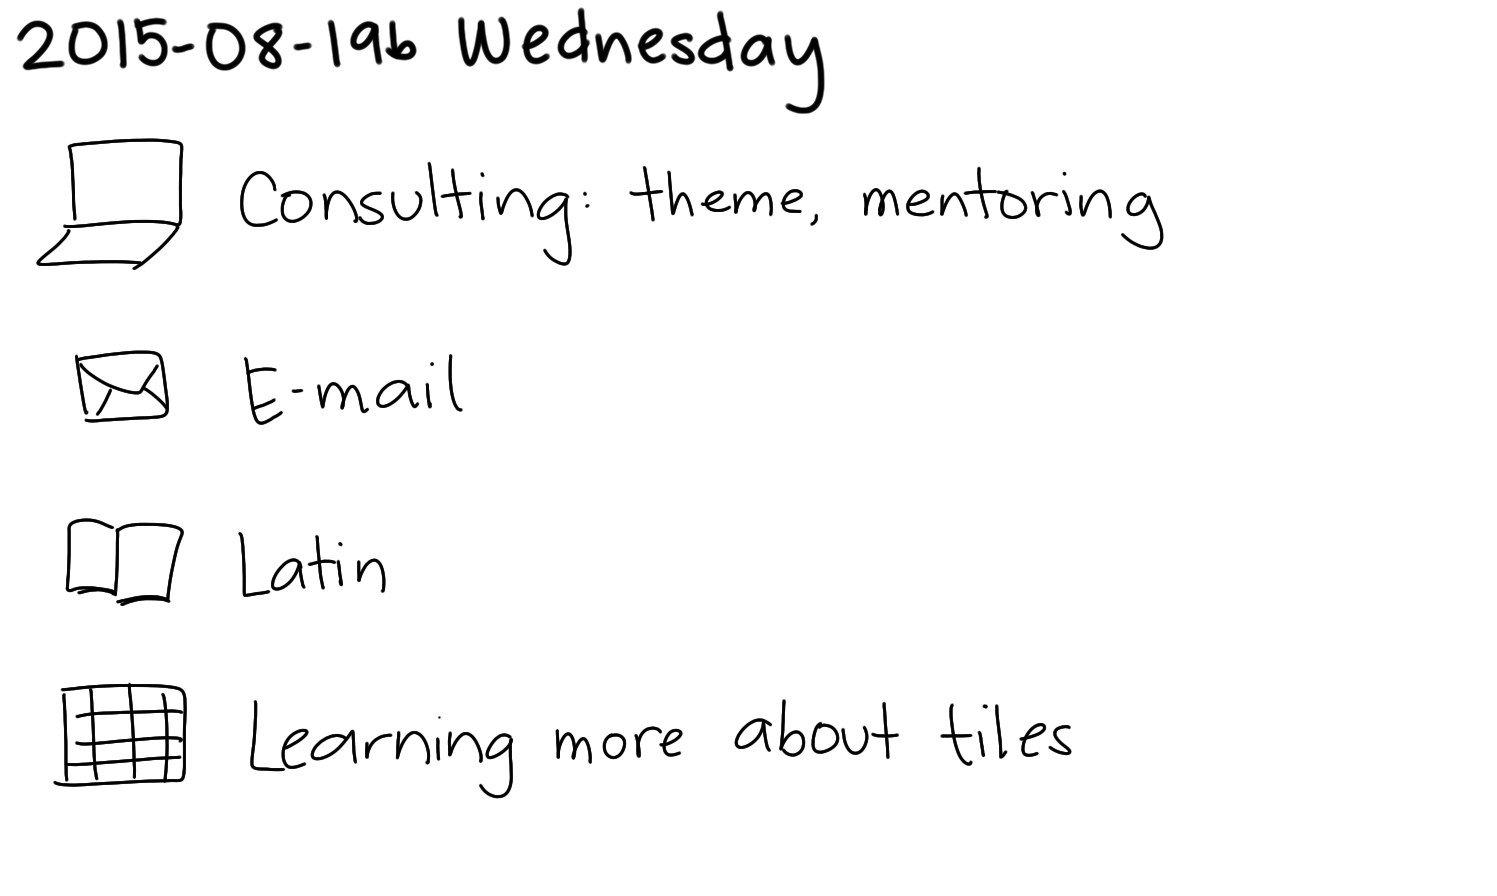 2015-08-19b Wednesday -- index card #journal.png